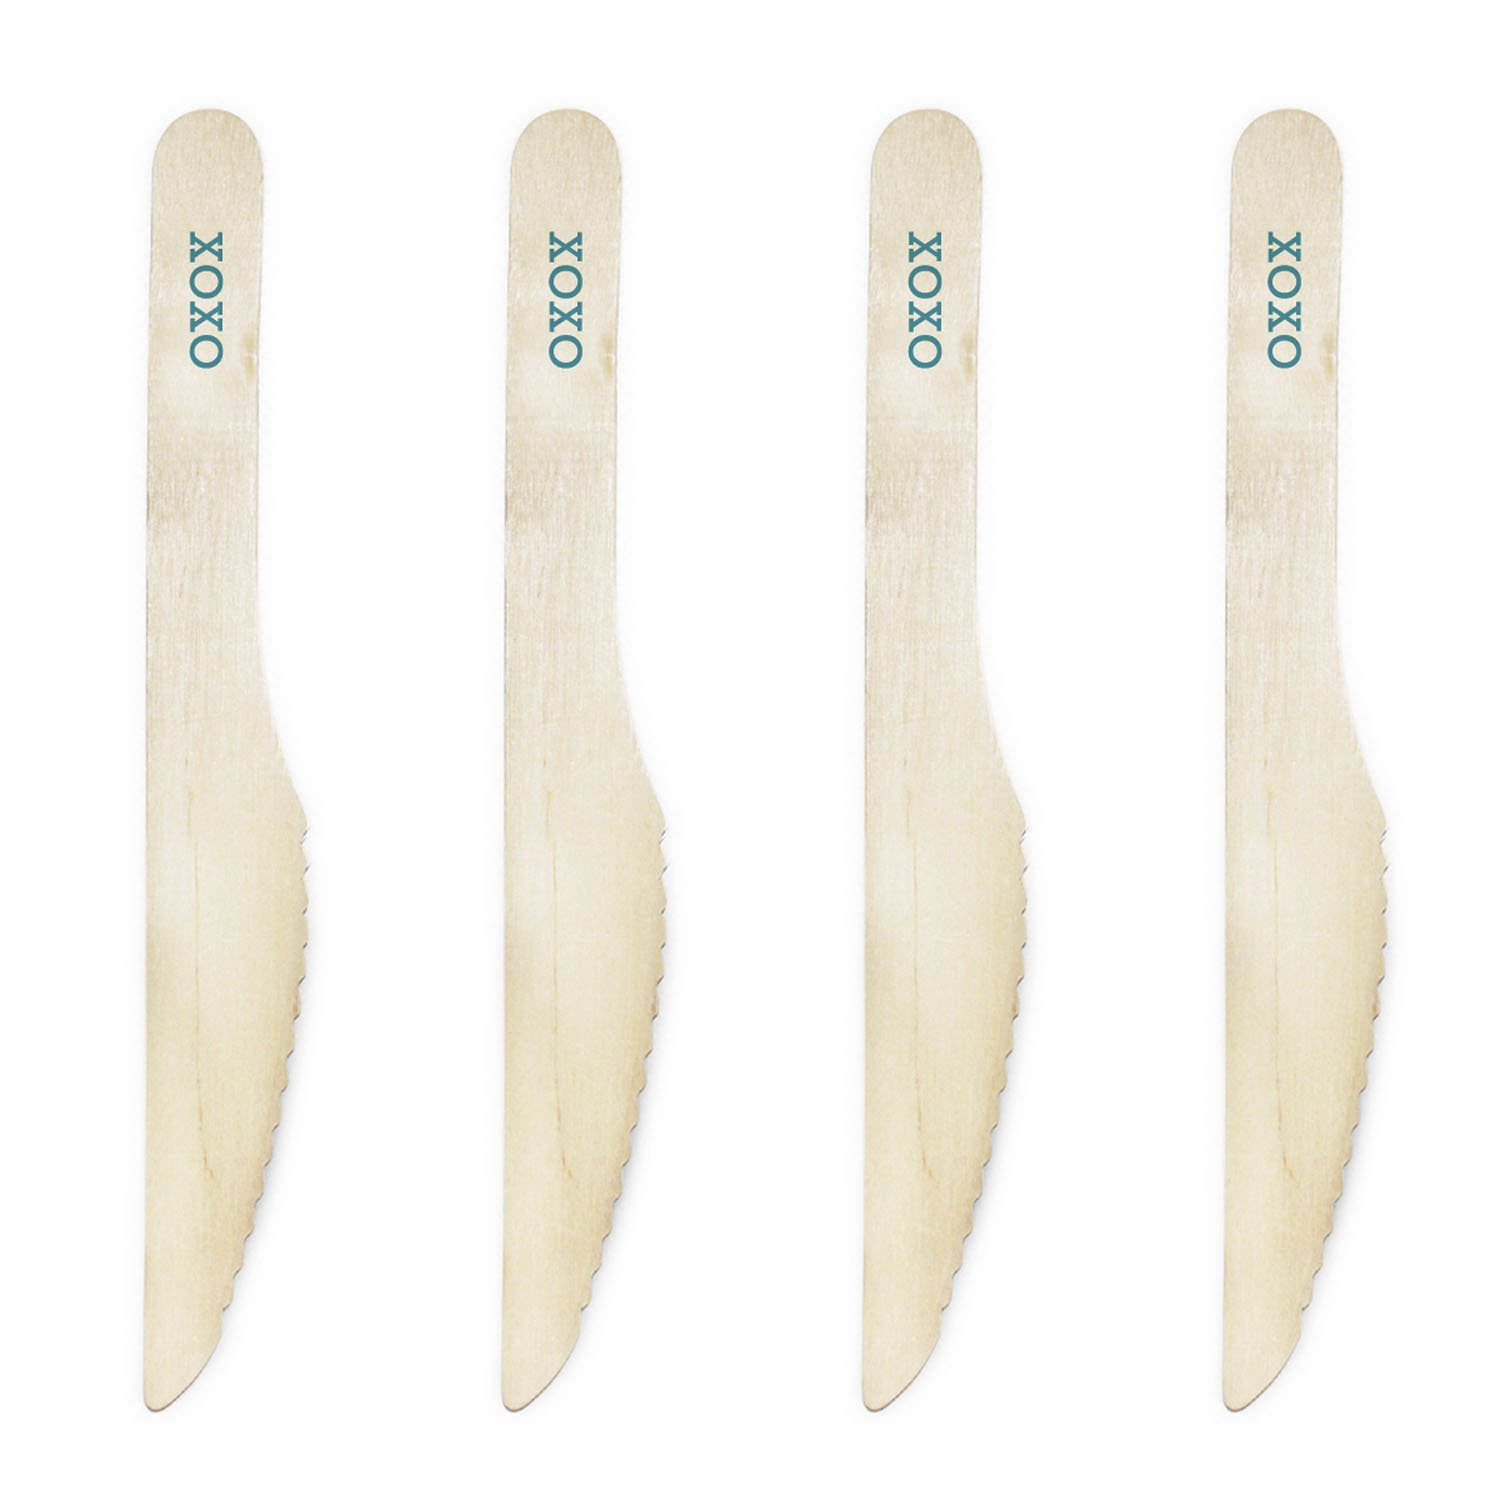 Dress My Cupcake Natural Wood Candy 200-Pack Buffet Knives DIY Kit, XOXO, Aqua